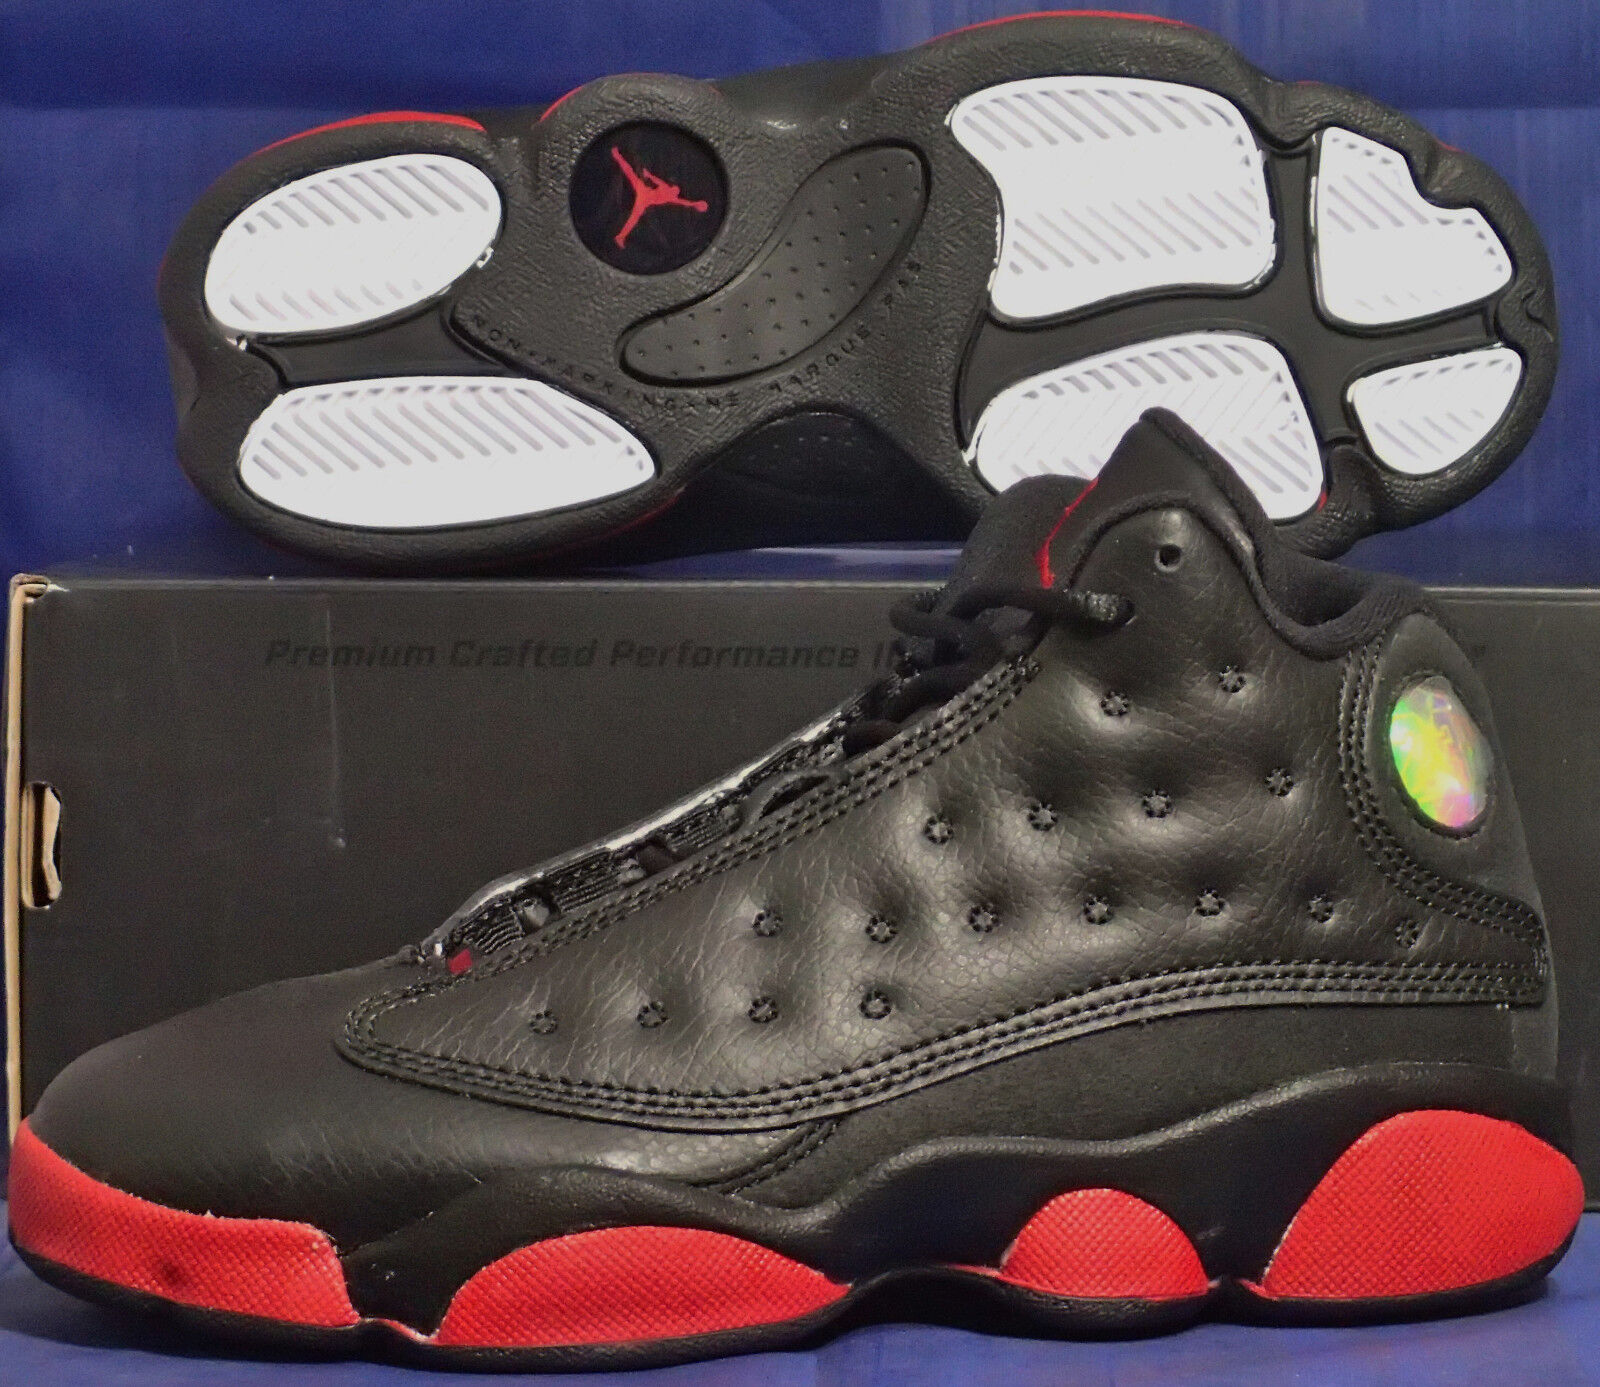 Nike Air Jordan 13 XIII Retro Black Gym Price reduction New shoes for men and women, limited time discount